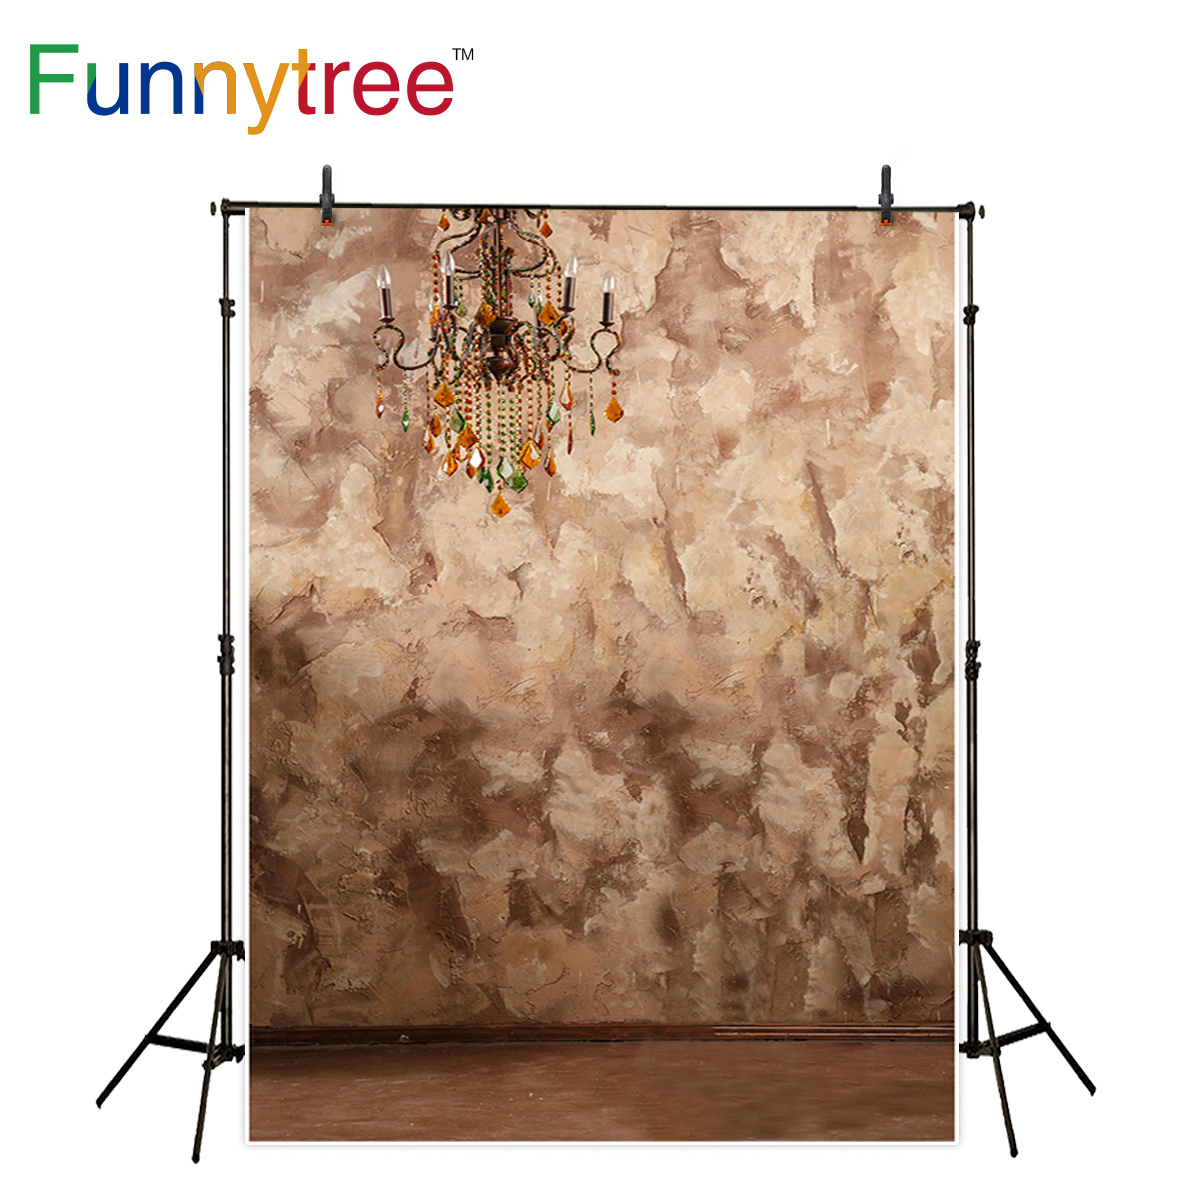 Funnytree photography background fuzzy abstract wall vinage pure color backdrop photobooth photo studio photo prop